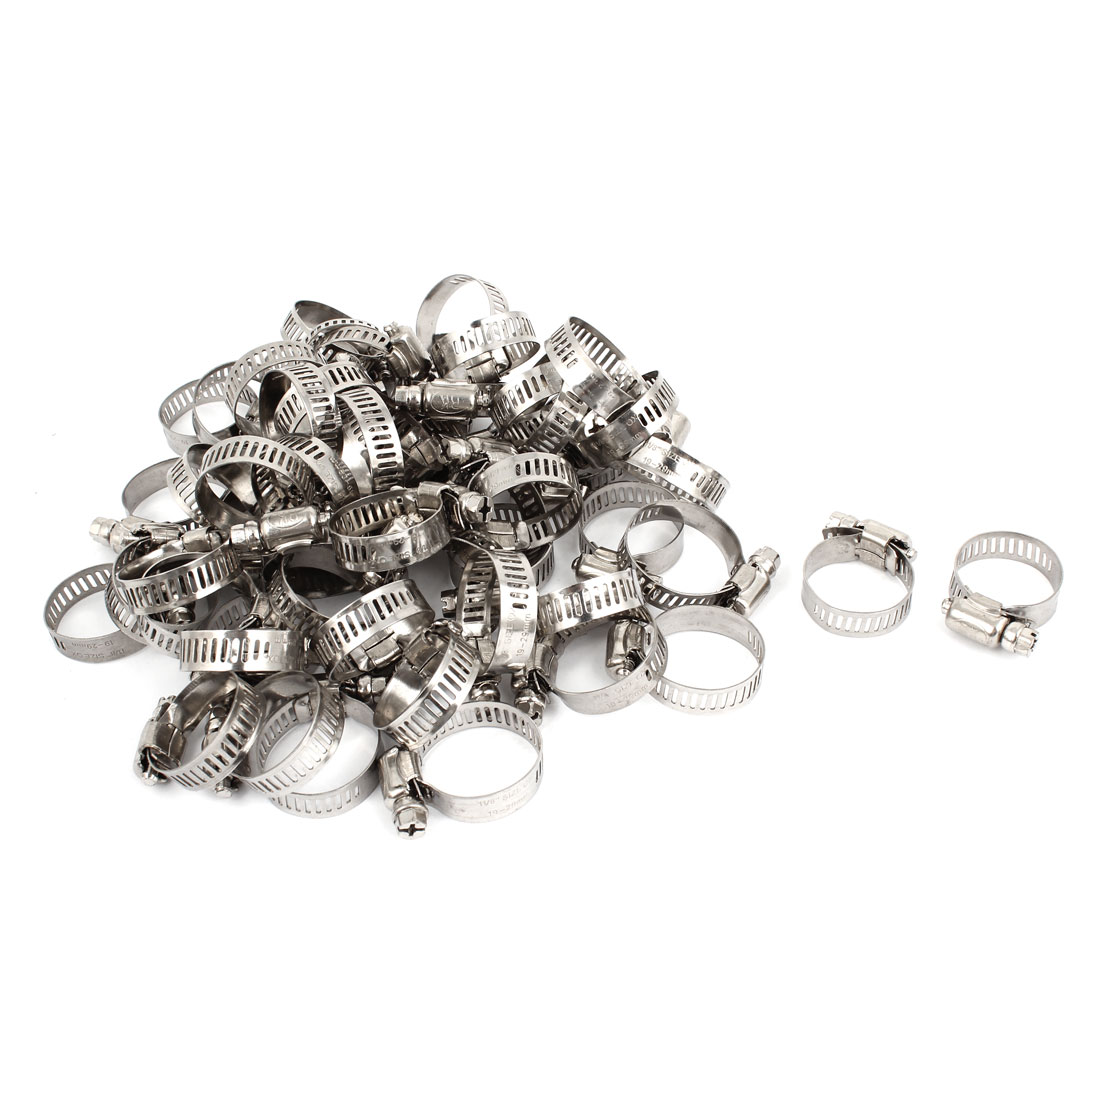 97 Pcs Stainless Steel 18-29mm Hoop Ring Adjustable Hose Clamps 10mm Width